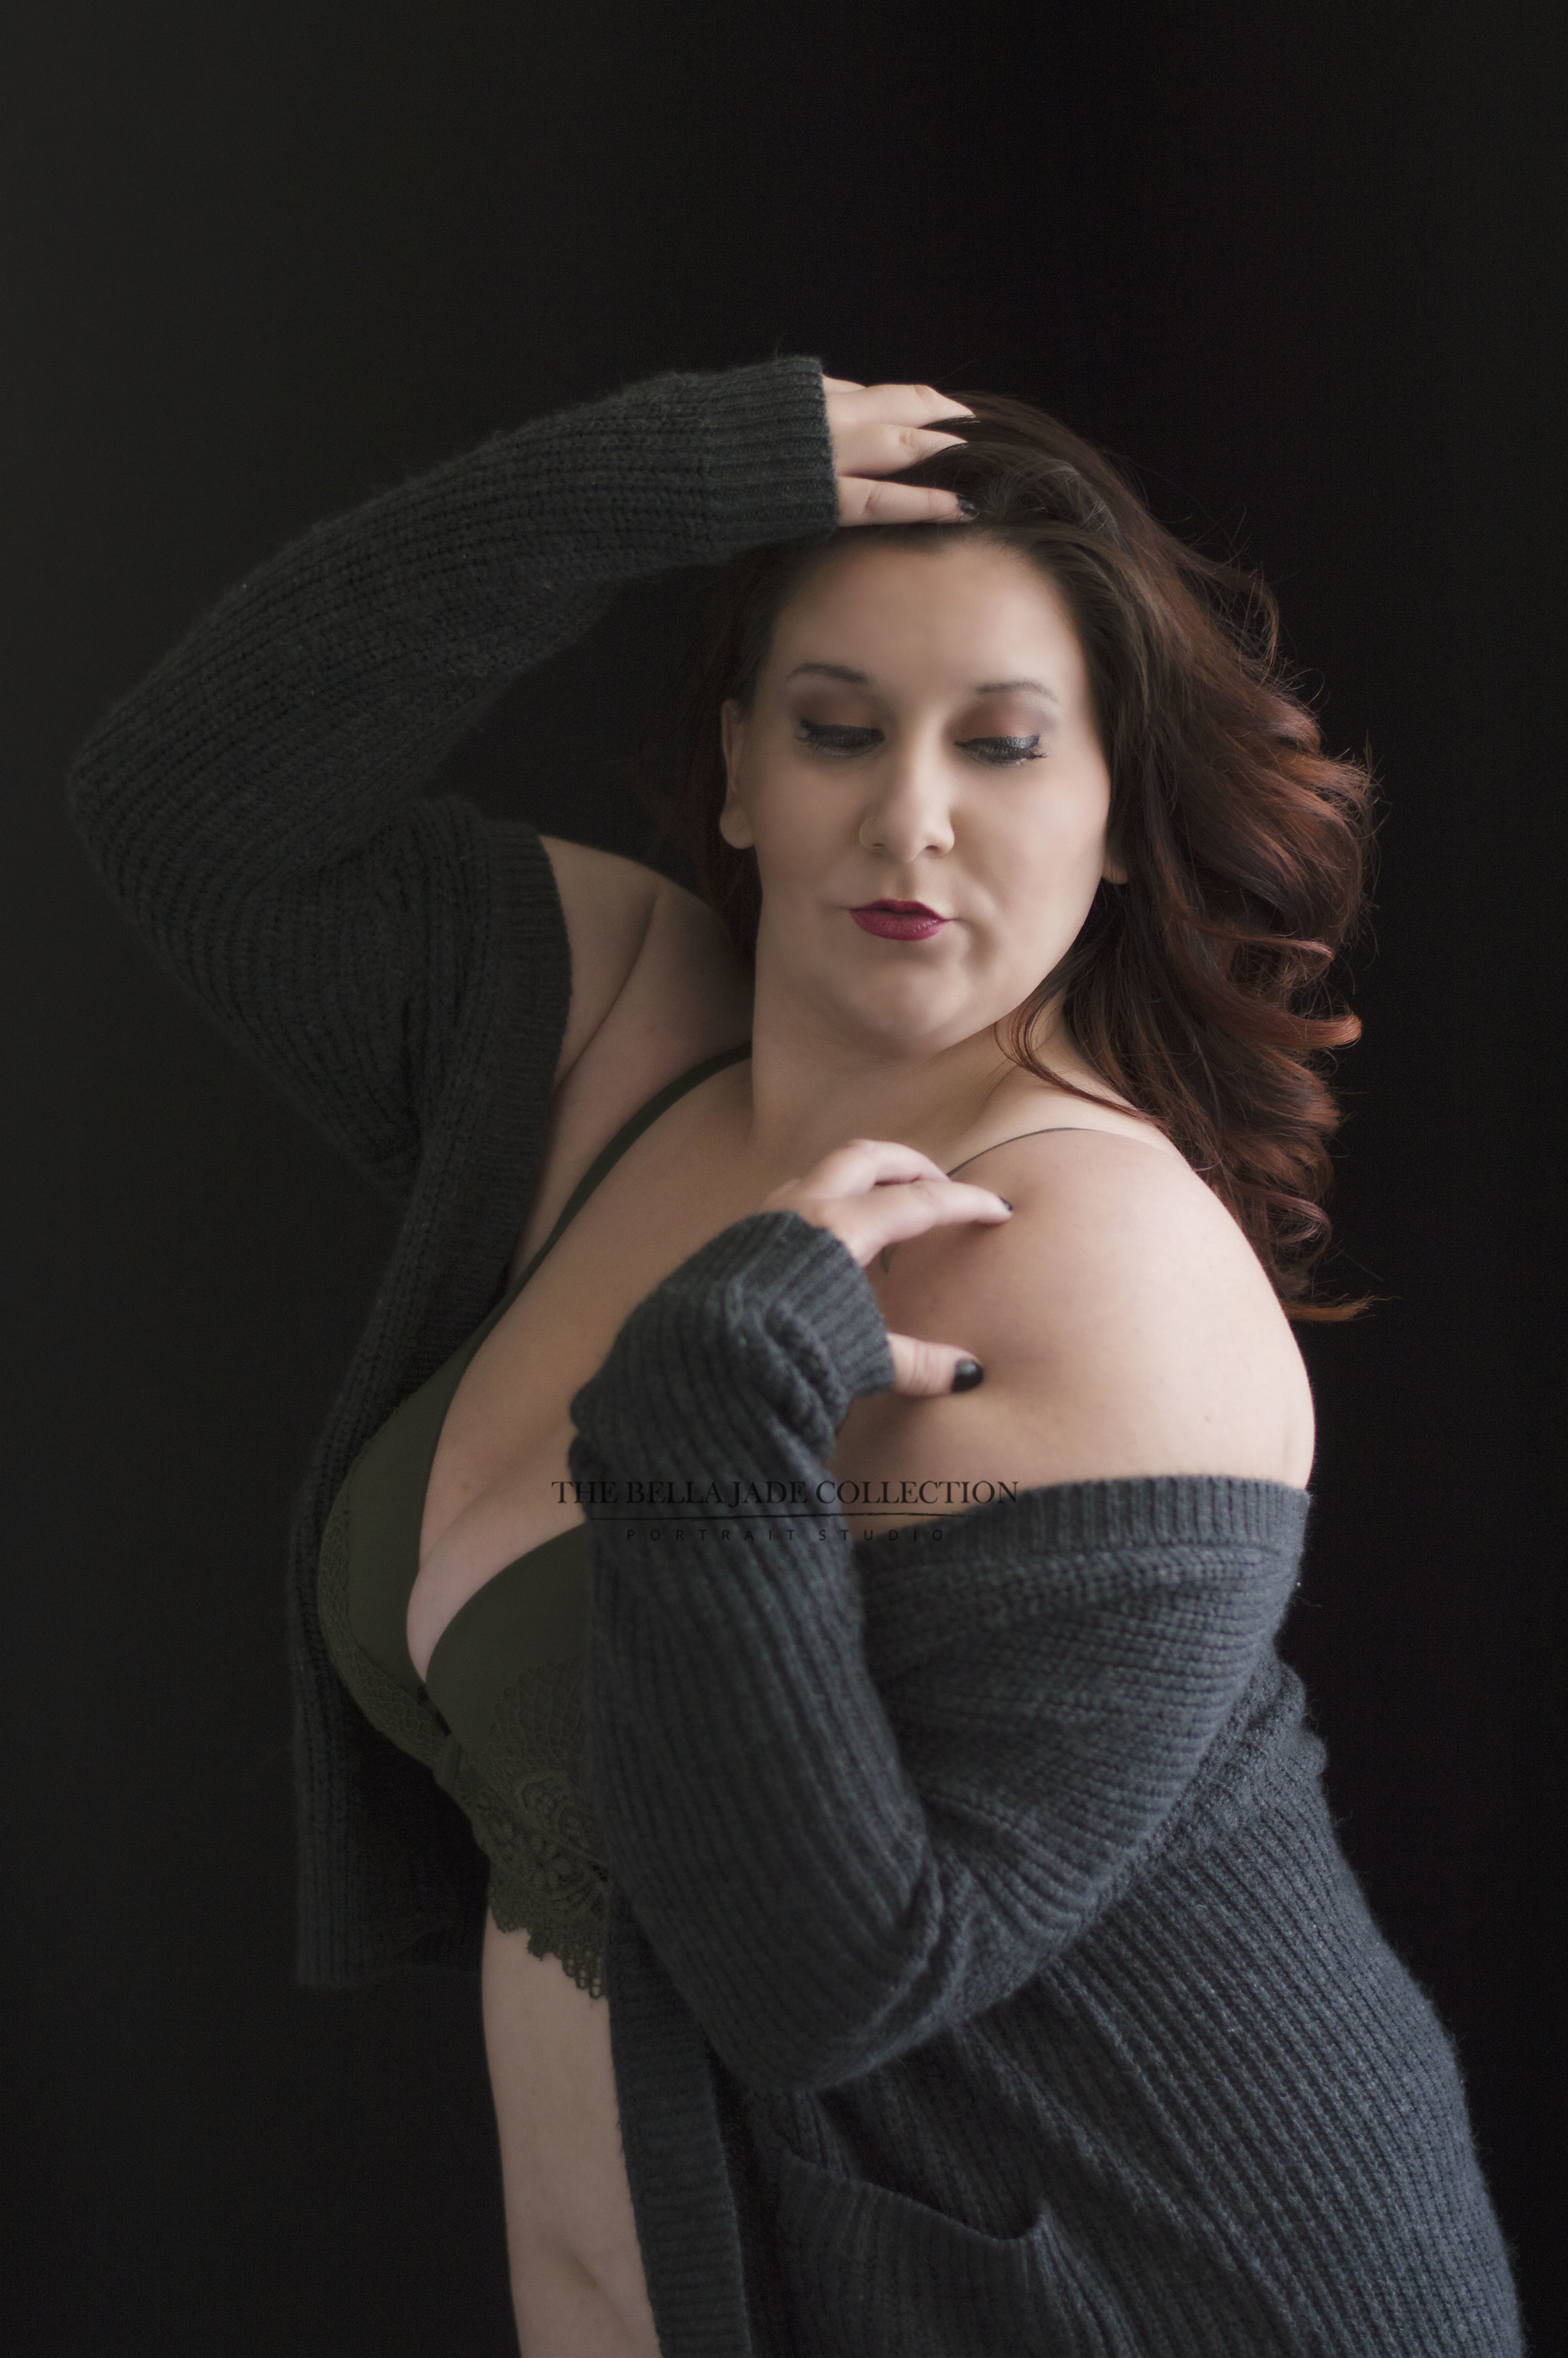 Picture of women posing for Intimate Glamour Photo Shoot at The Bella Jade Collection - a boutique portrait photography studio specializing in women's portraiture offering professional boudoir photography in Phoenix, Scottsdale, Tempe, Mesa Chandler, Gilbert area.